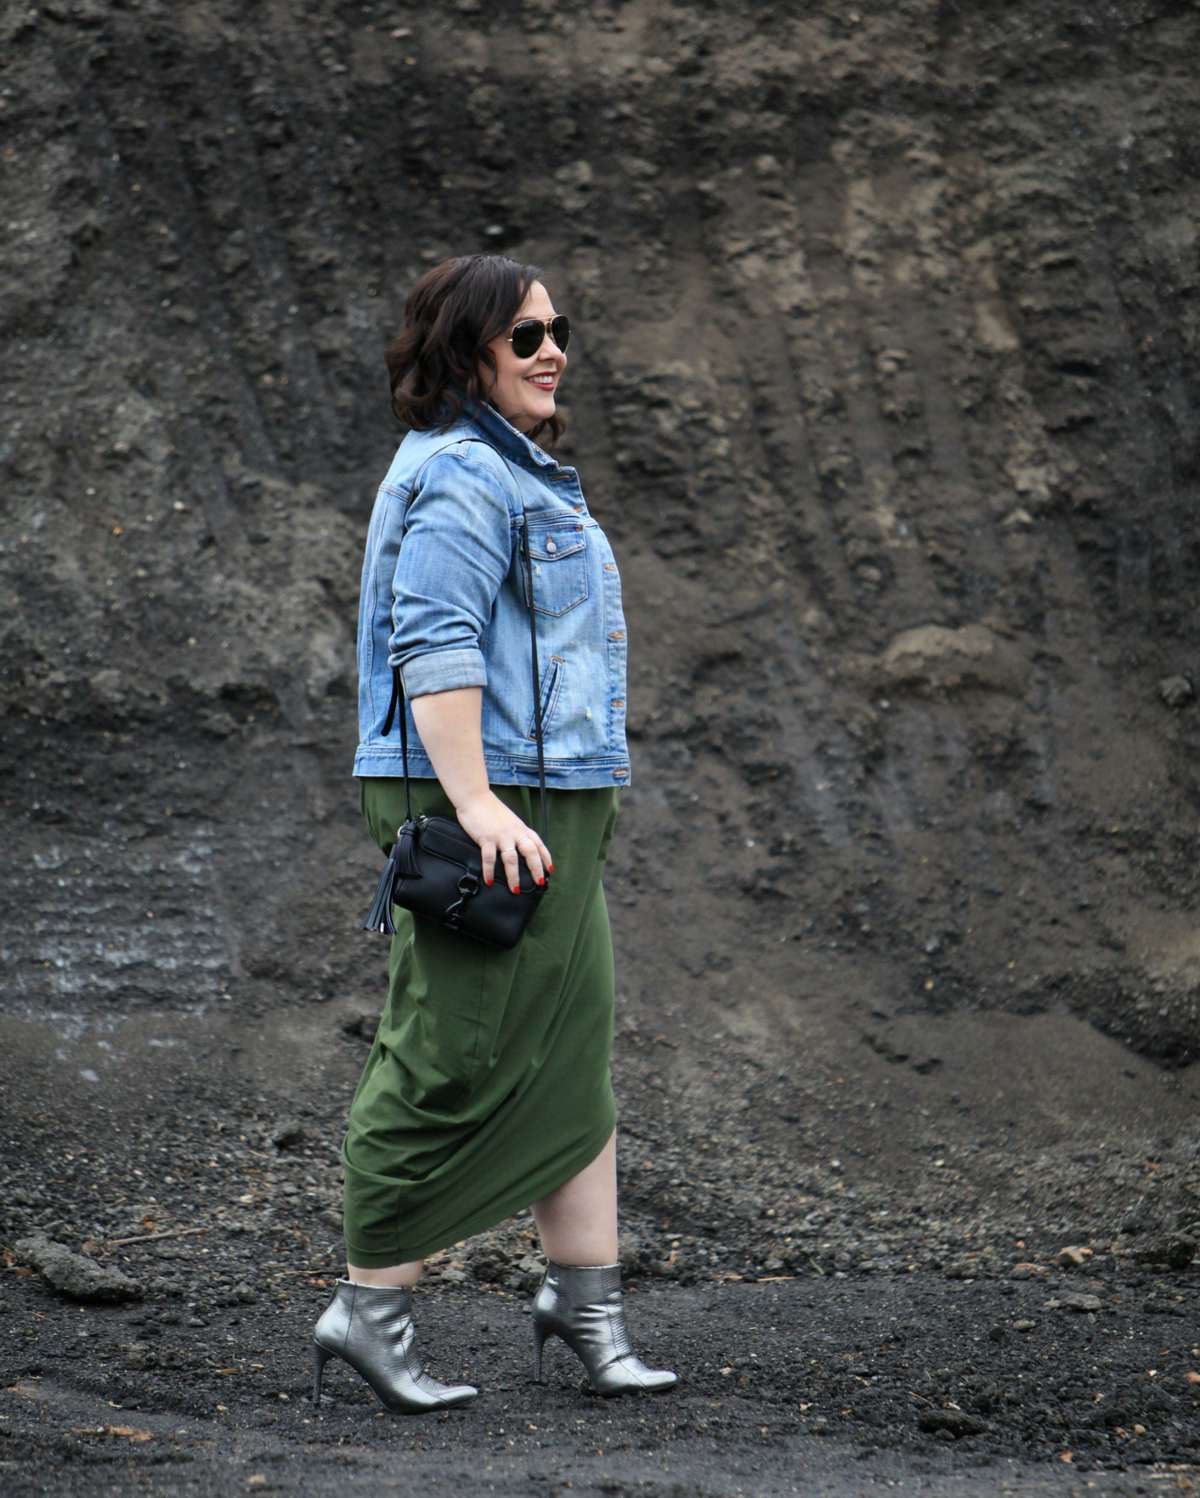 Wardrobe Oxygen, over 40 fashion blogger in a Universal Standard Geneva dress with a J. Crew Factory denim jacket and silver snakeskin booties